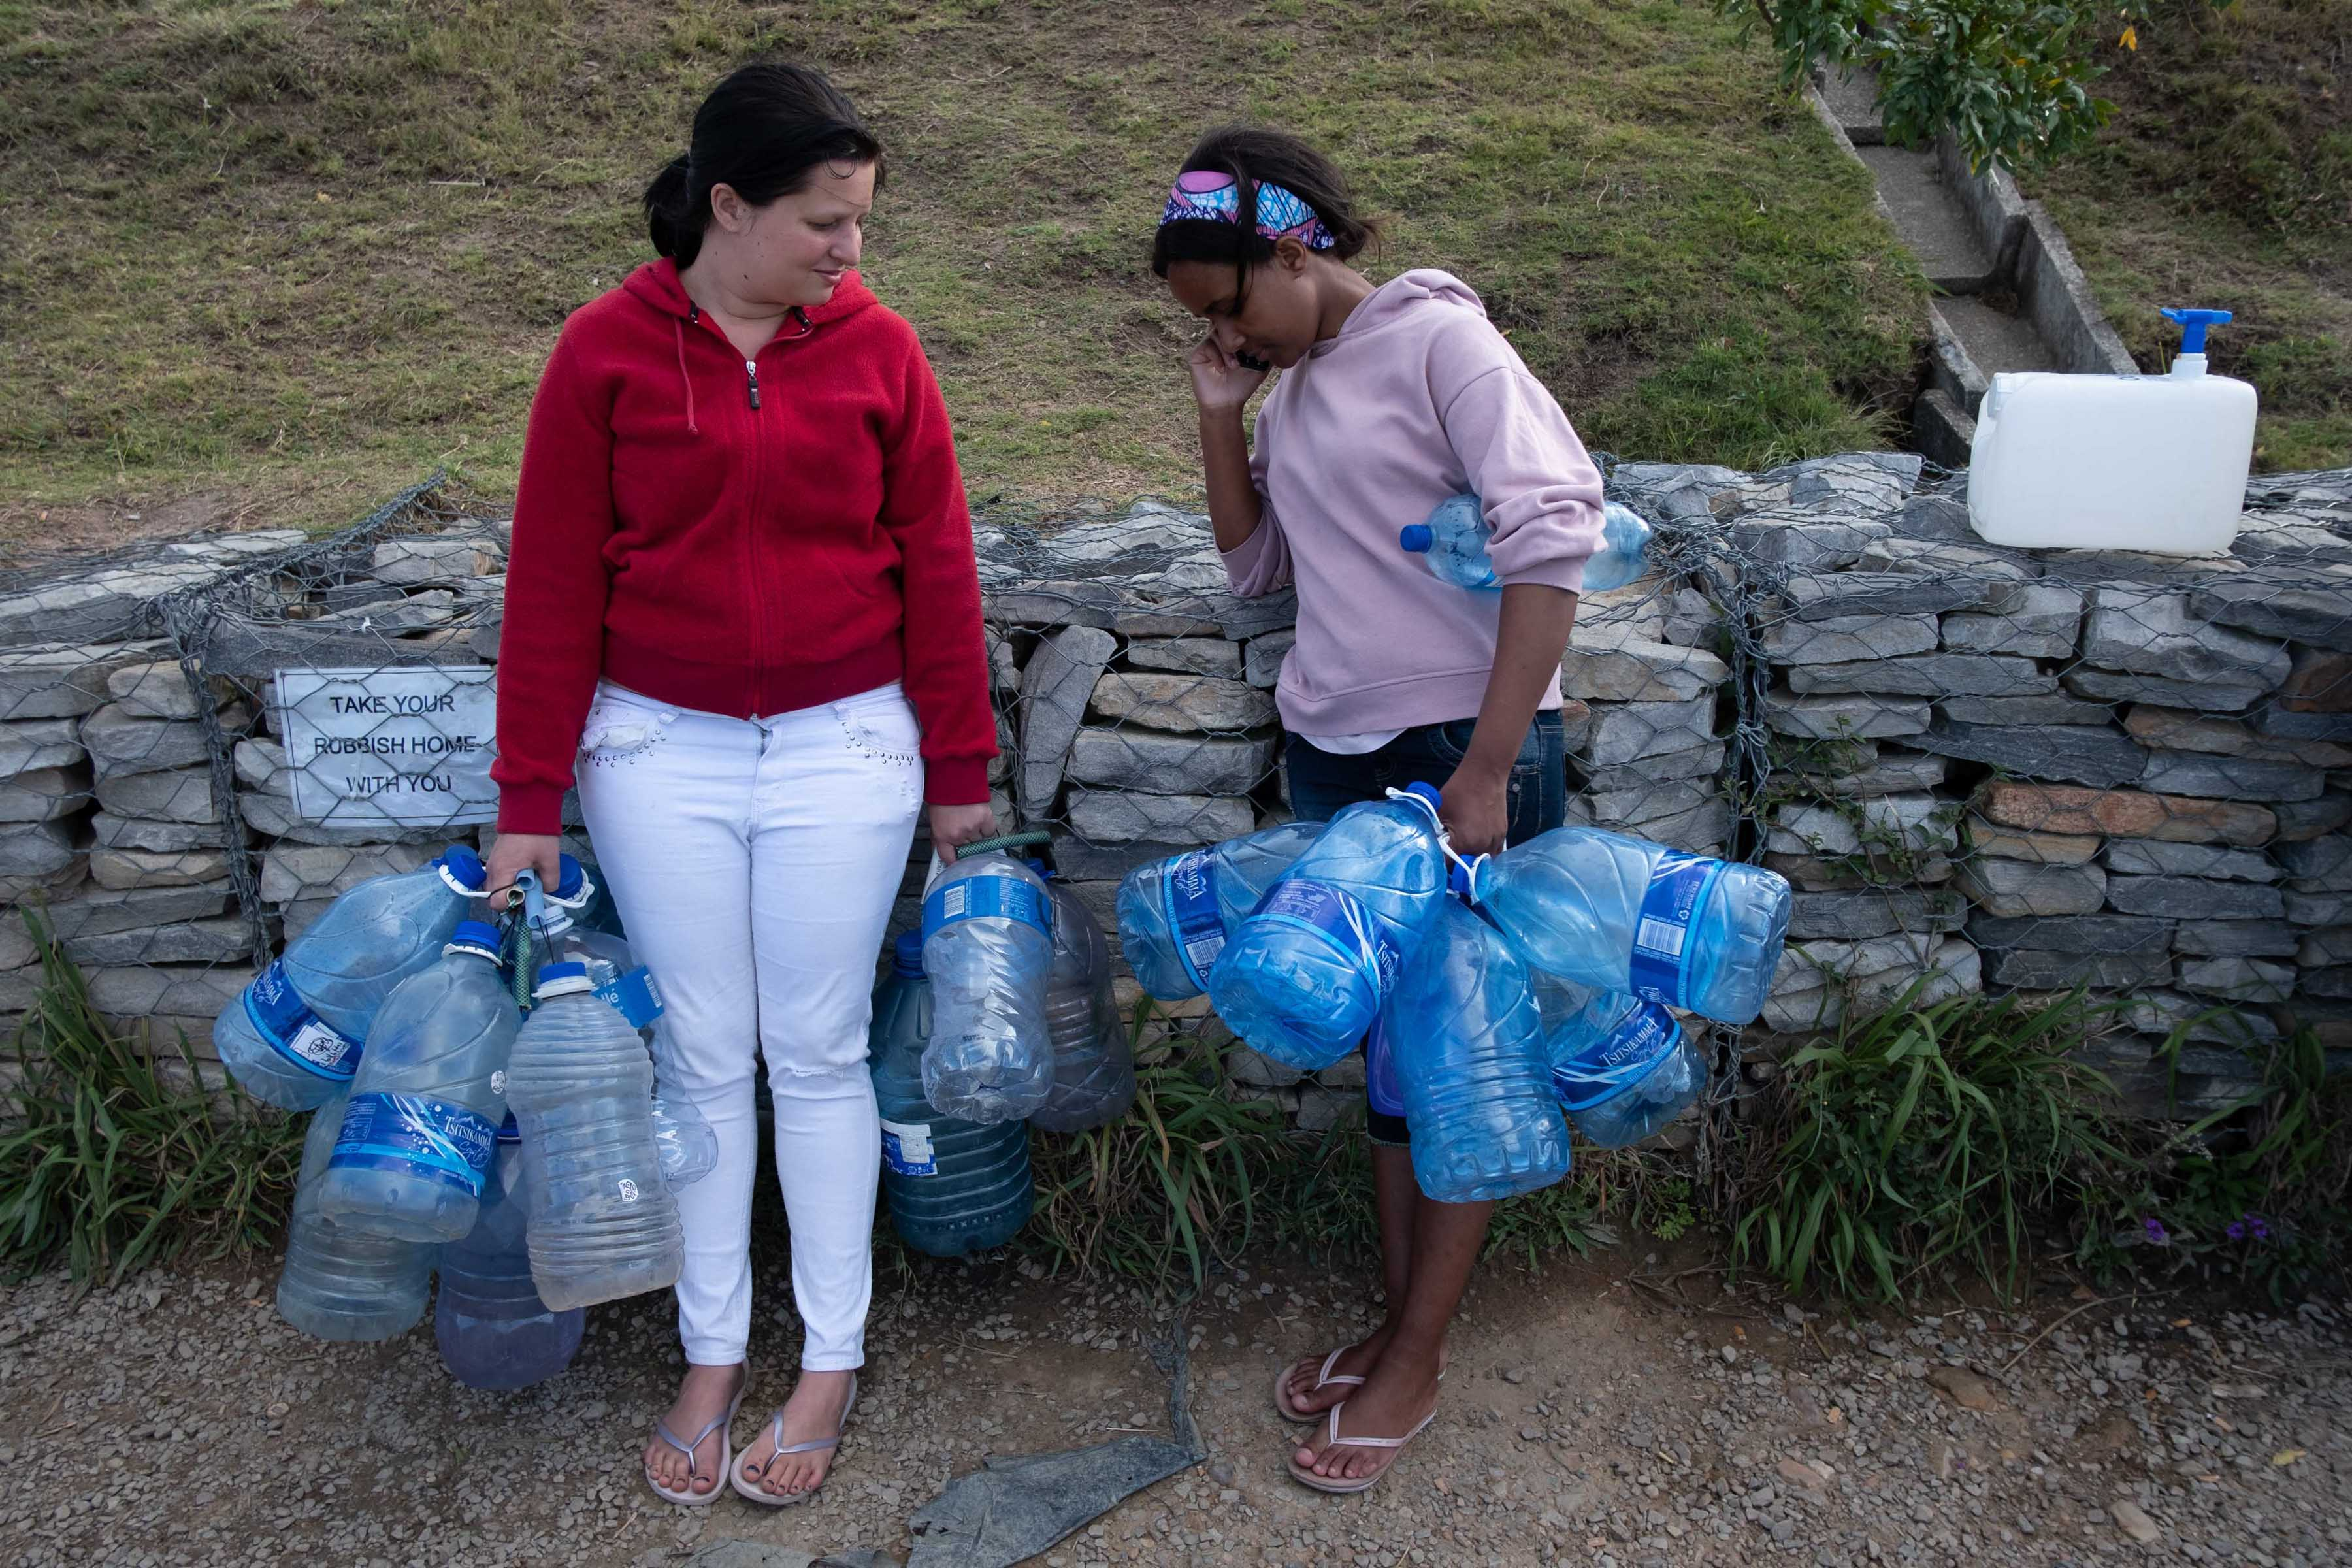 12 November 2019. Neighbours Maryanne Quinton and Cuma Boltina queuing at the freshwater spring on the outskirts of Makhanda. A lack of service delivery and foresight from the government is said to be exacerbating the effects of the drought.